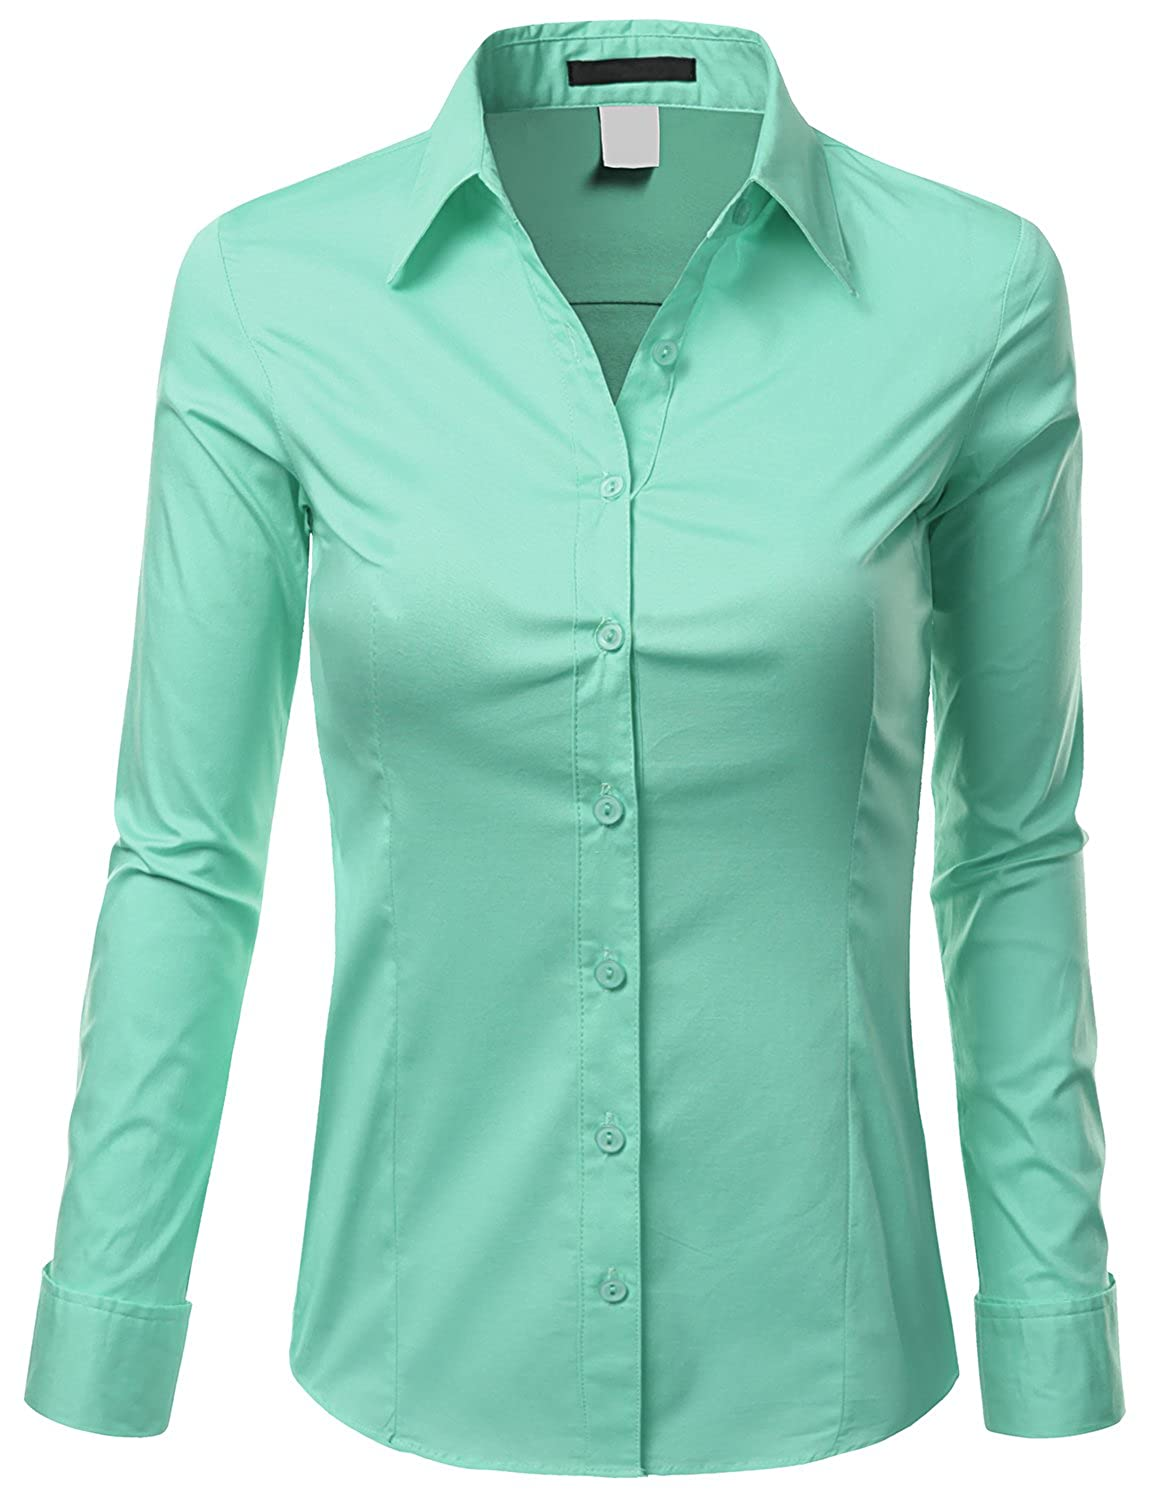 cd7023a900a Doublju Womens Basic Long Sleeve Cotton Button Down Collared Shirt at  Amazon Women s Clothing store